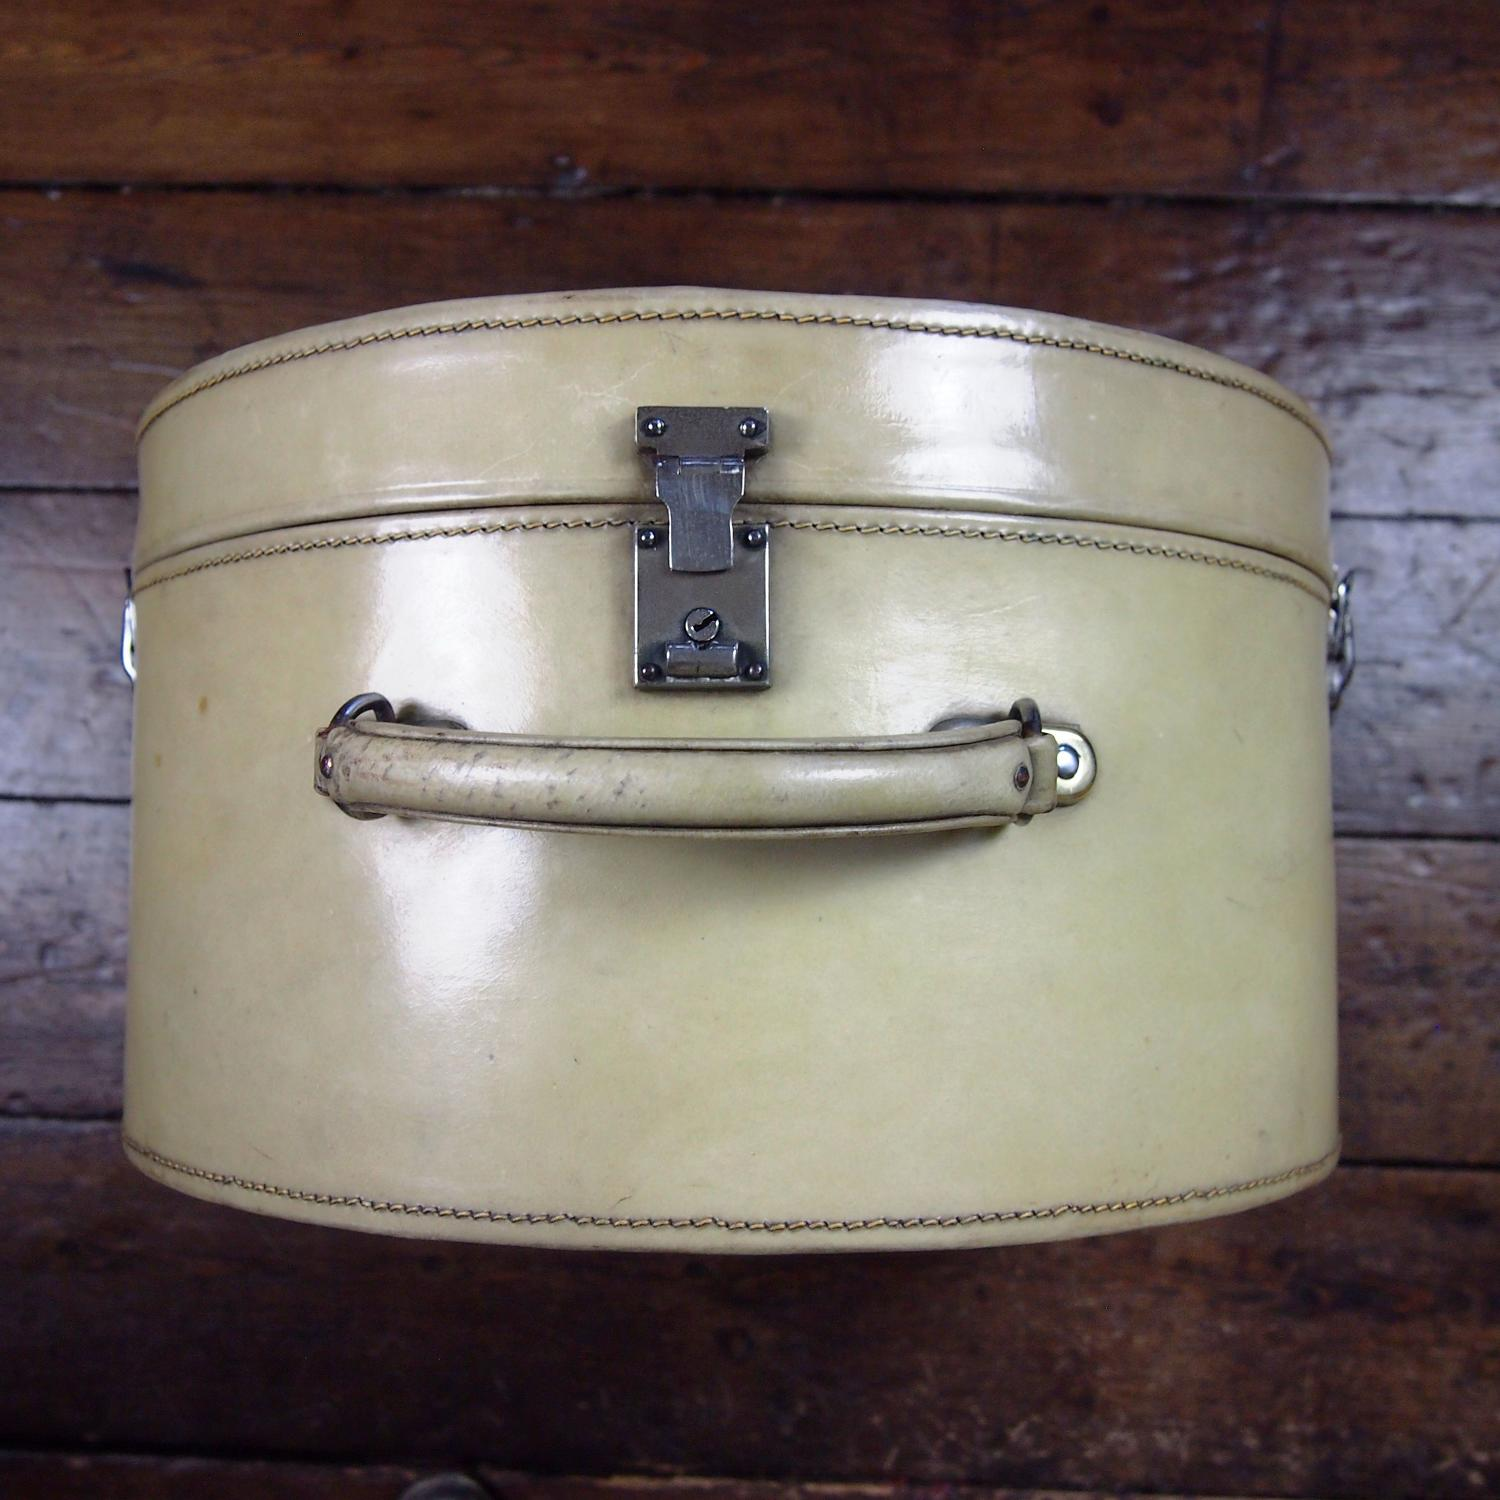 Vellum Shaped Hat Box with Deco Chrome Locks.